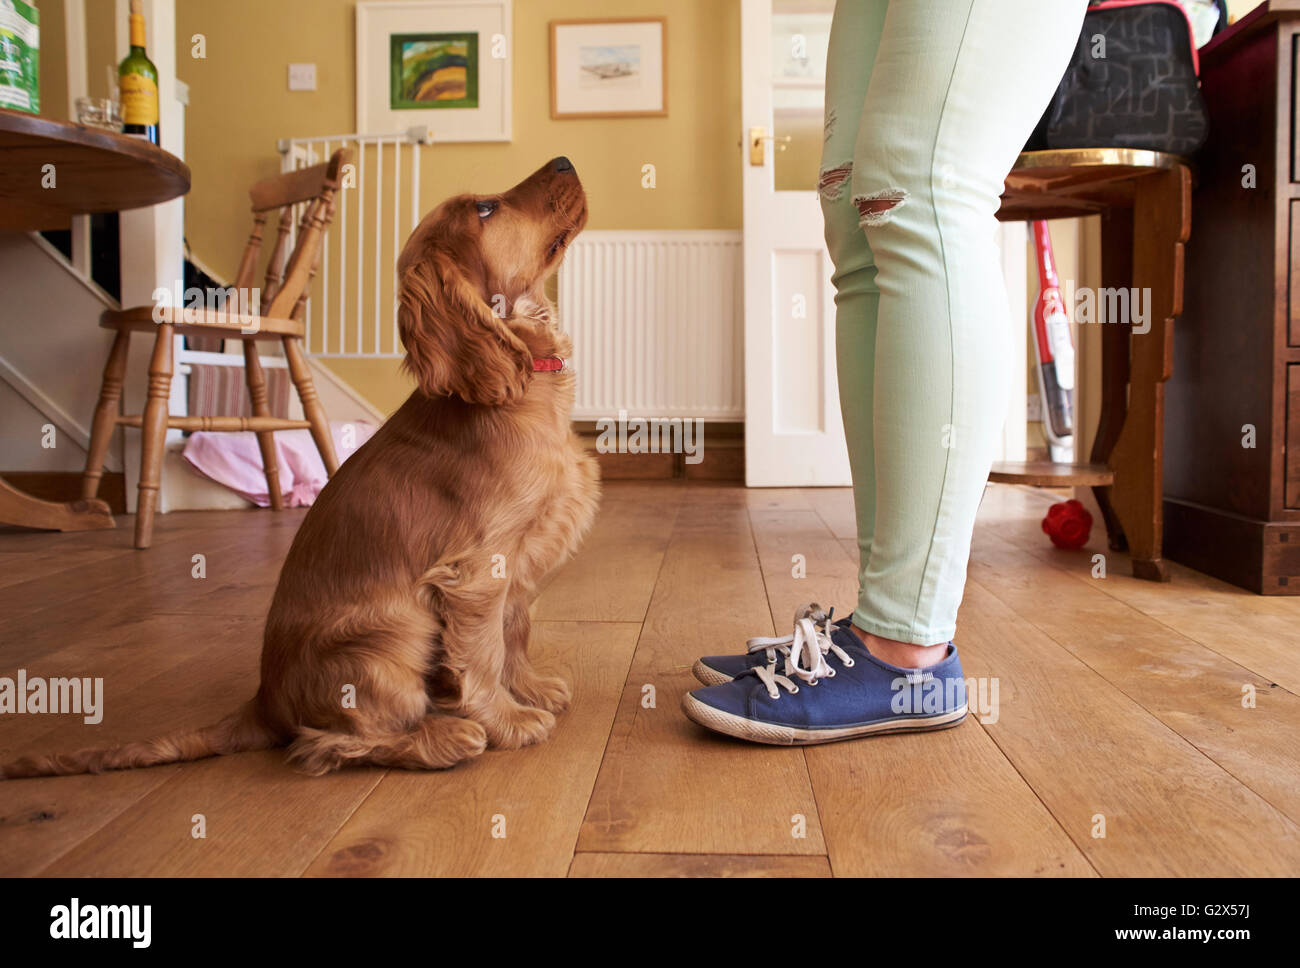 Cocker Spaniel Puppy Owner Training Dog To Sit - Stock Image